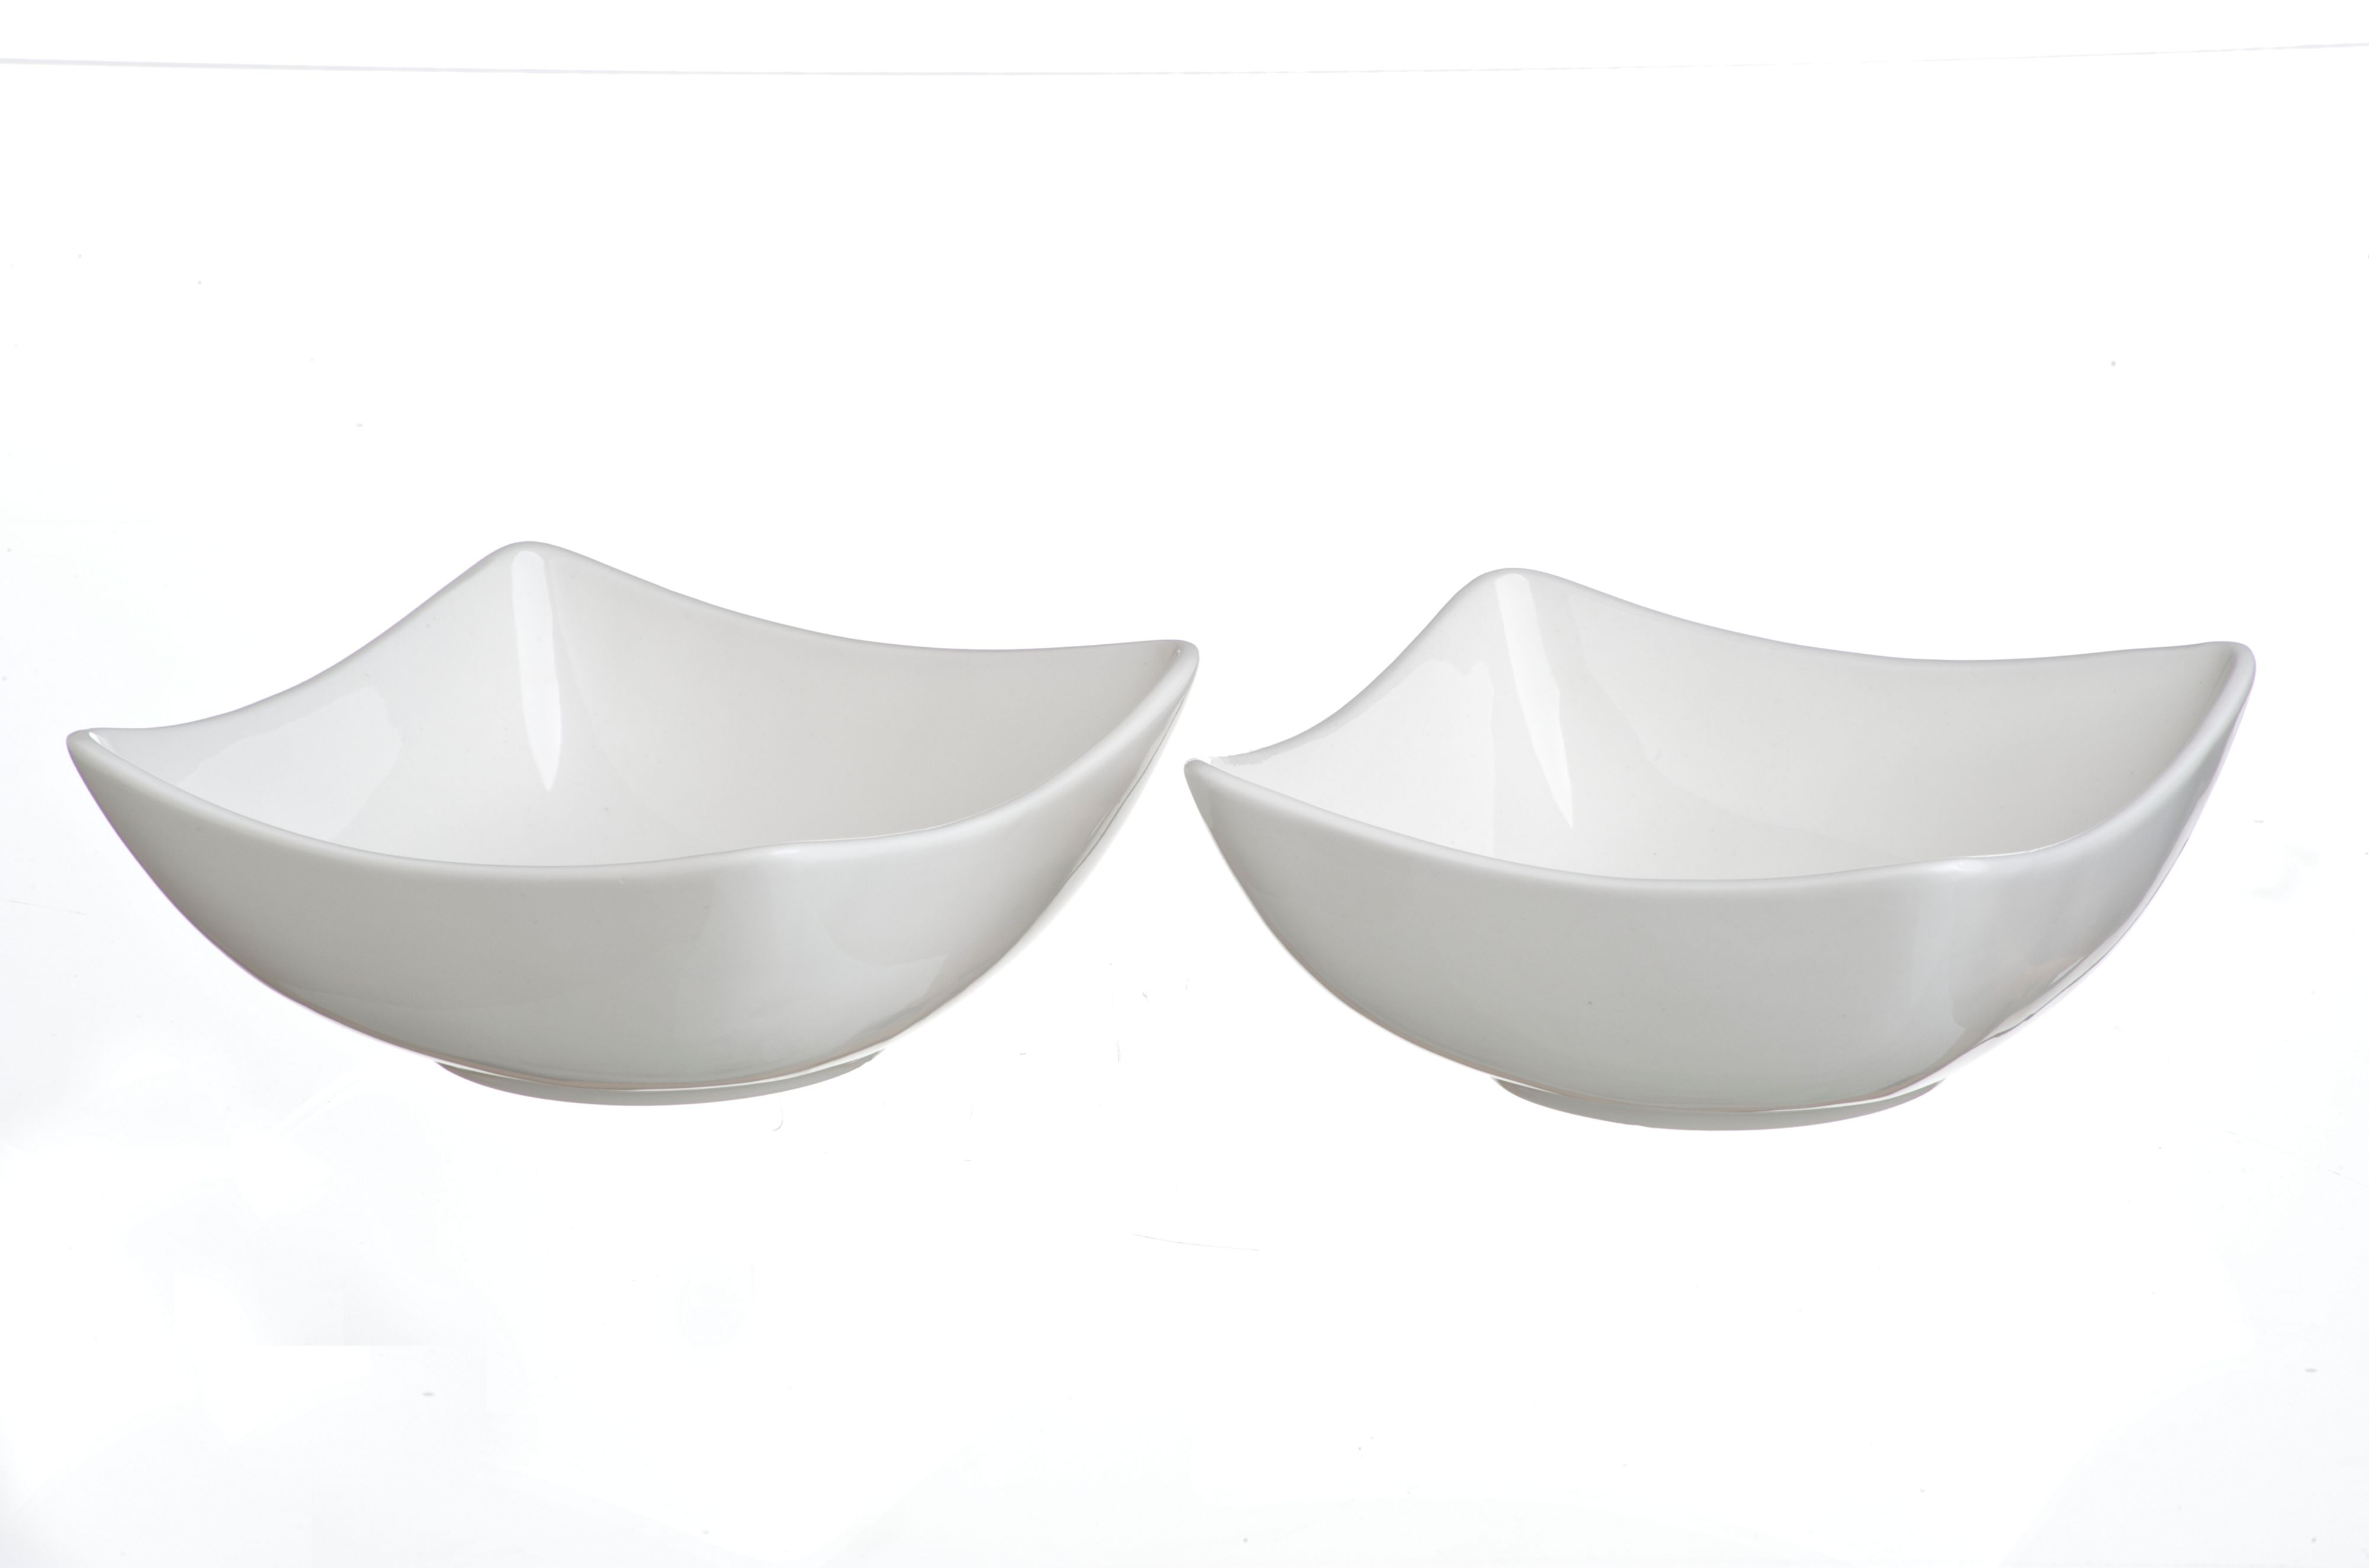 2 medium square bowls